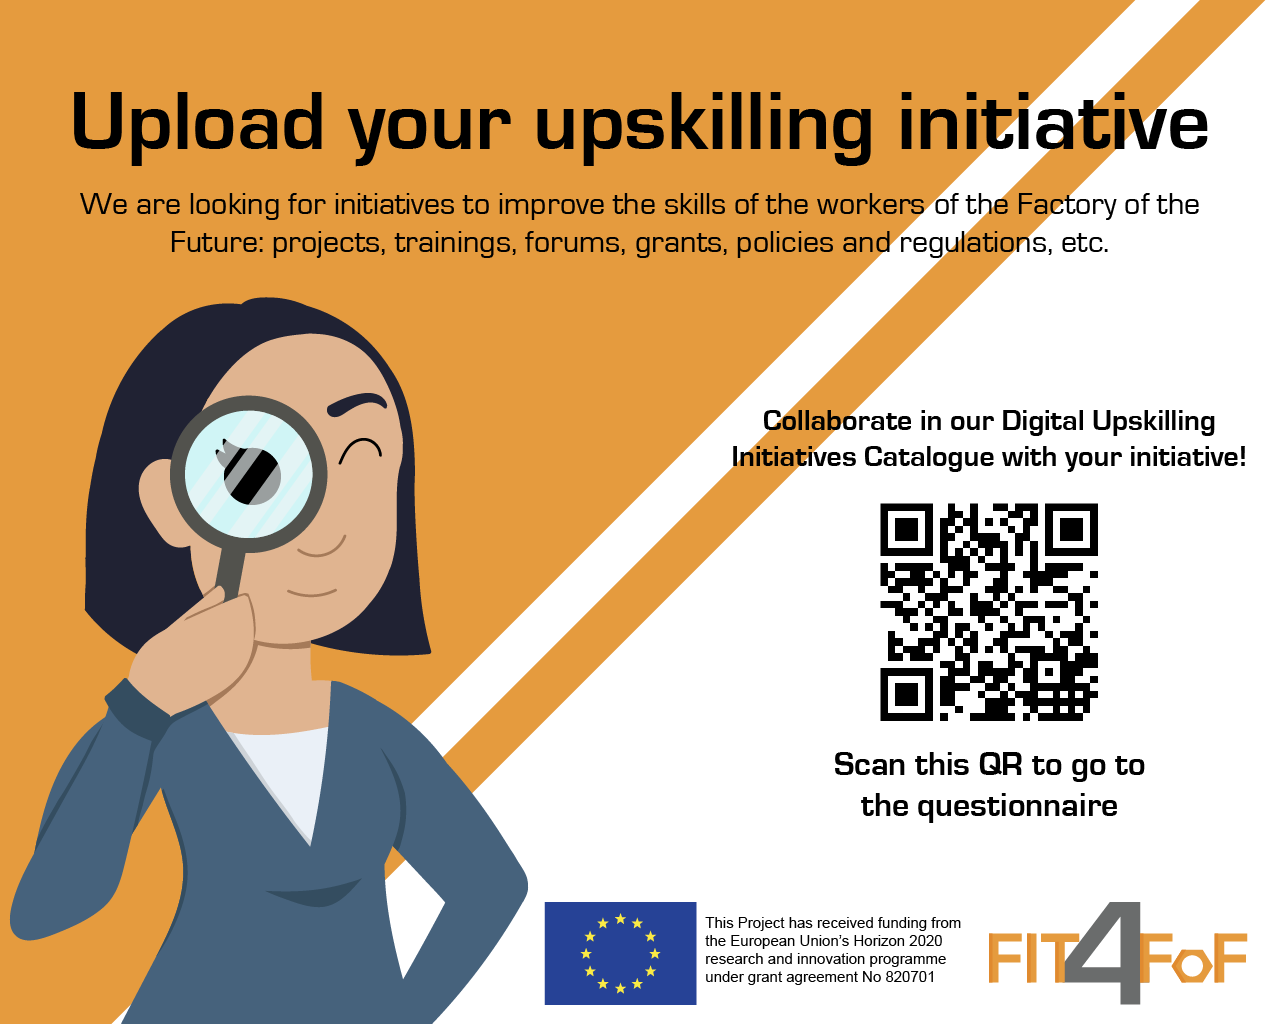 We are looking for upskilling initiatives! en Making our Workforce